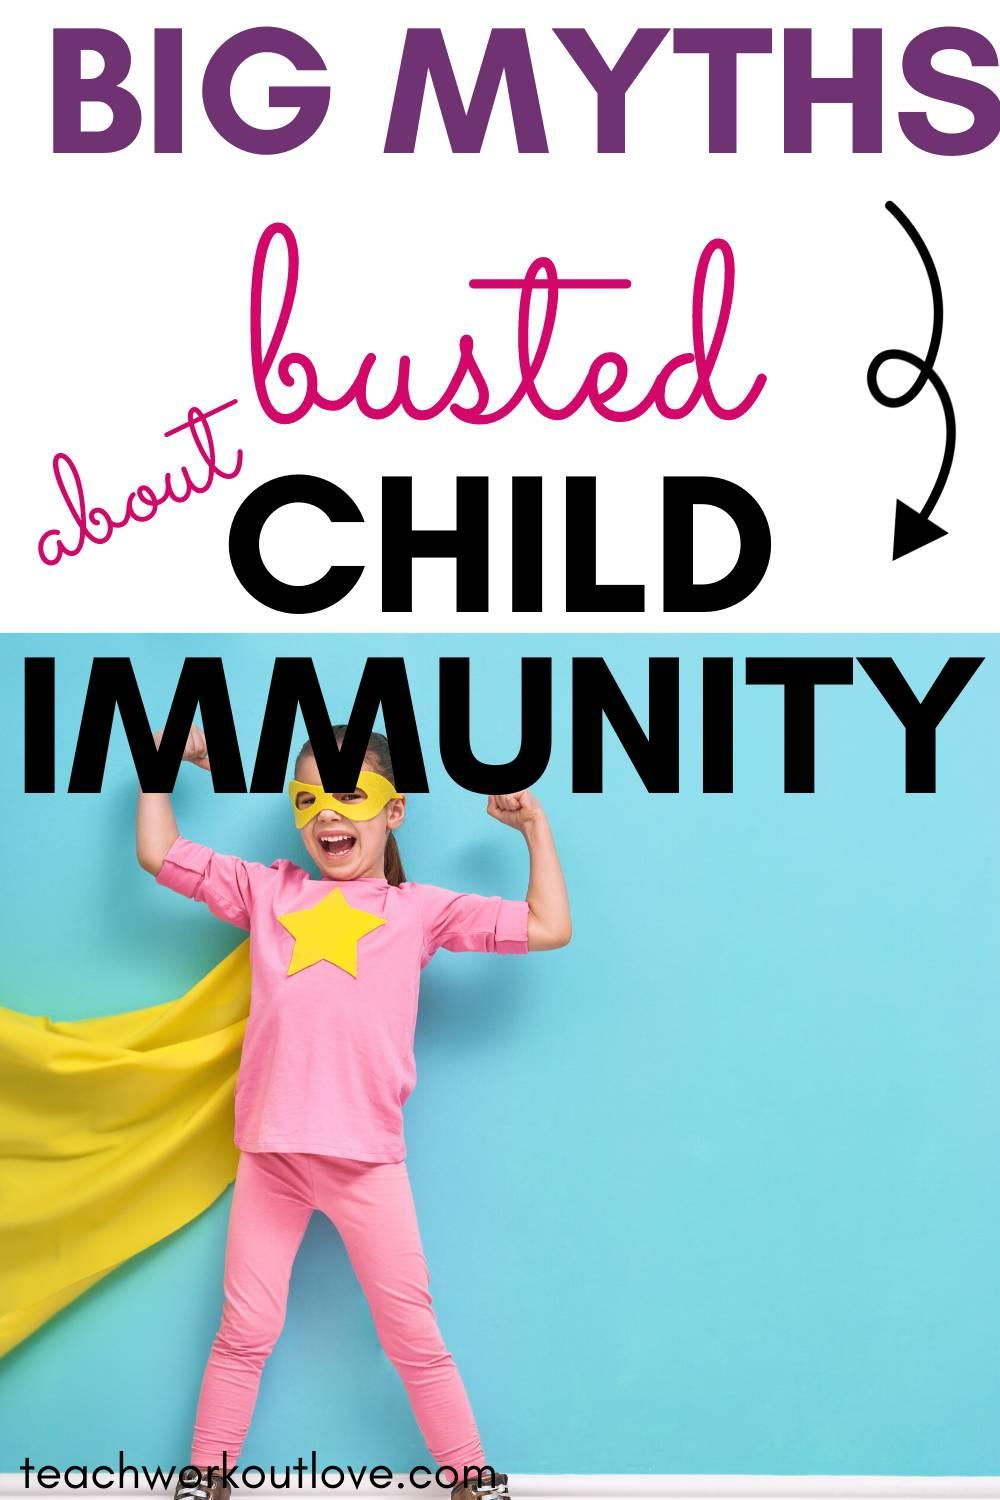 Understanding your child's immune system and what you can do to support it is a key part of keeping your little one healthy as he or she grows up. To arm yourself with some essential knowledge that you can rely on throughout your little one's childhood, take a look at these common child immunity myths and facts.